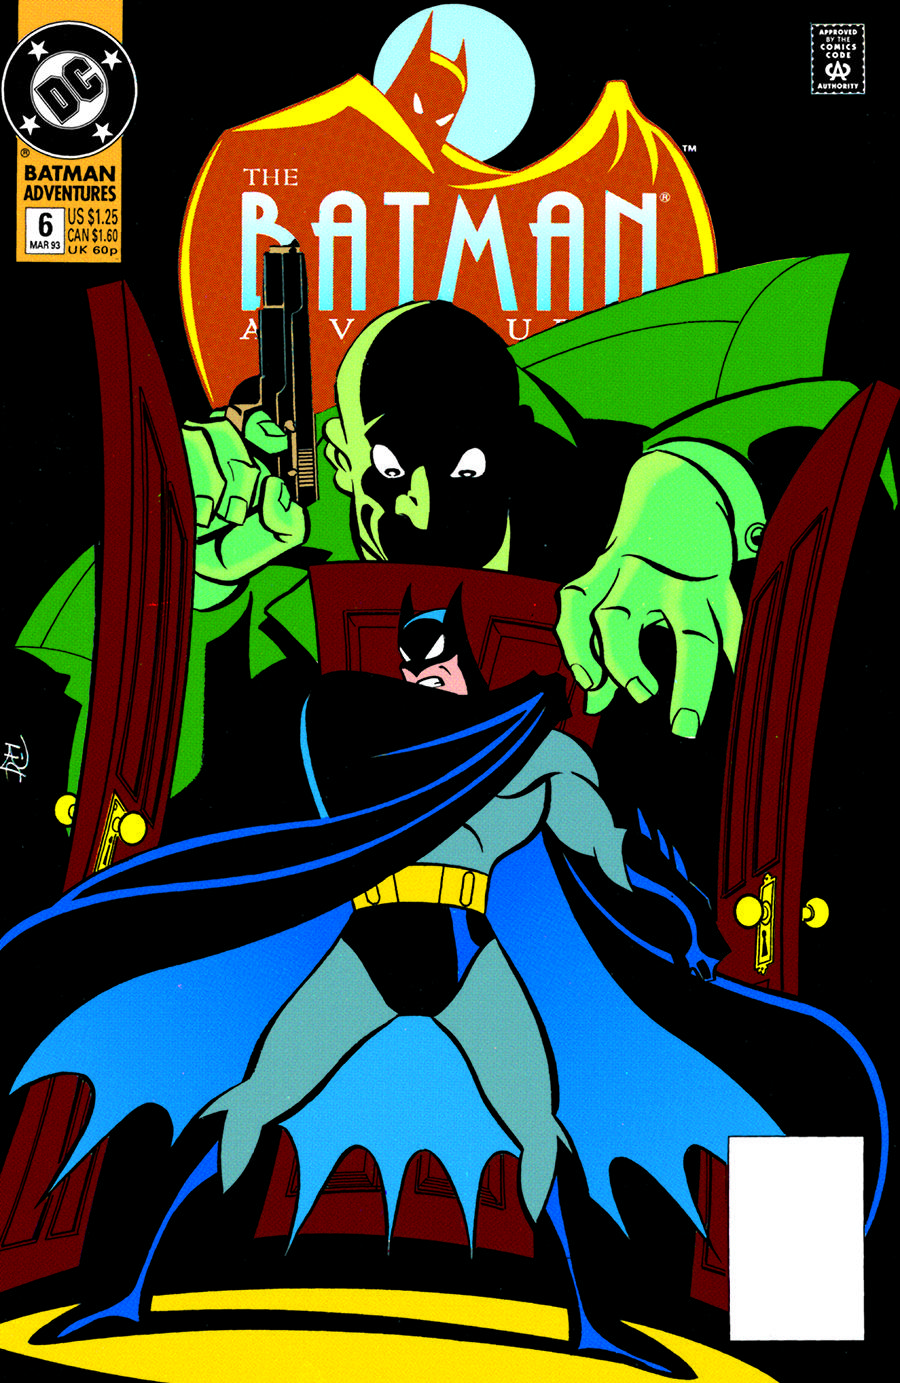 DC CLASSICS THE BATMAN ADVENTURES